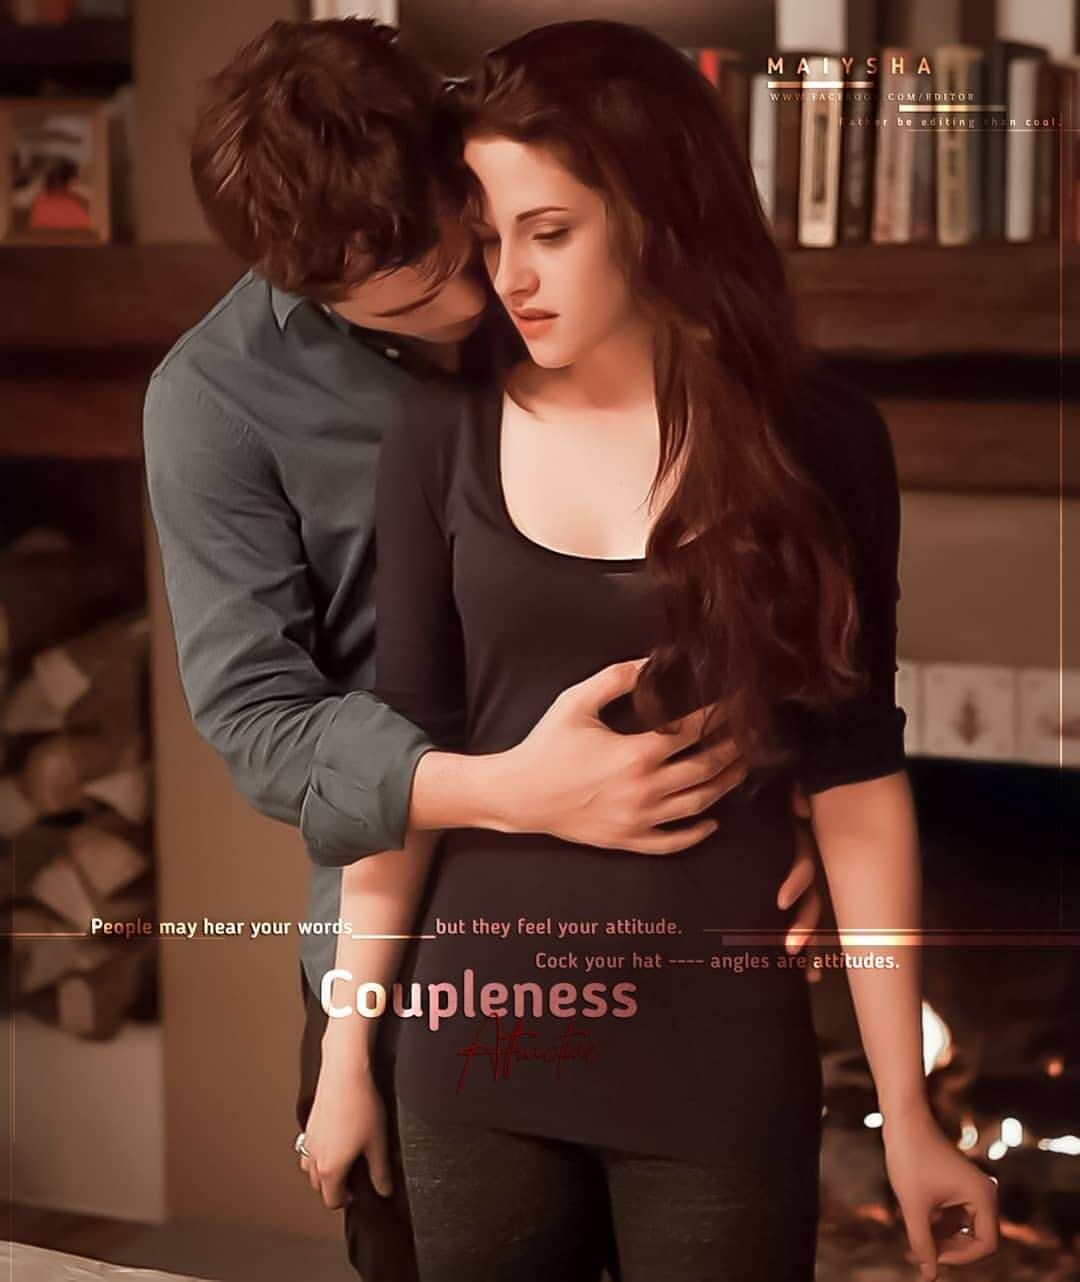 Hollywood Romantic Couple Hd Wallpaper Kristen And Robert Together Hd Wallpaper For Desktop Mobil Cute Couples Hugging Romantic Photoshoot Love Couple Images